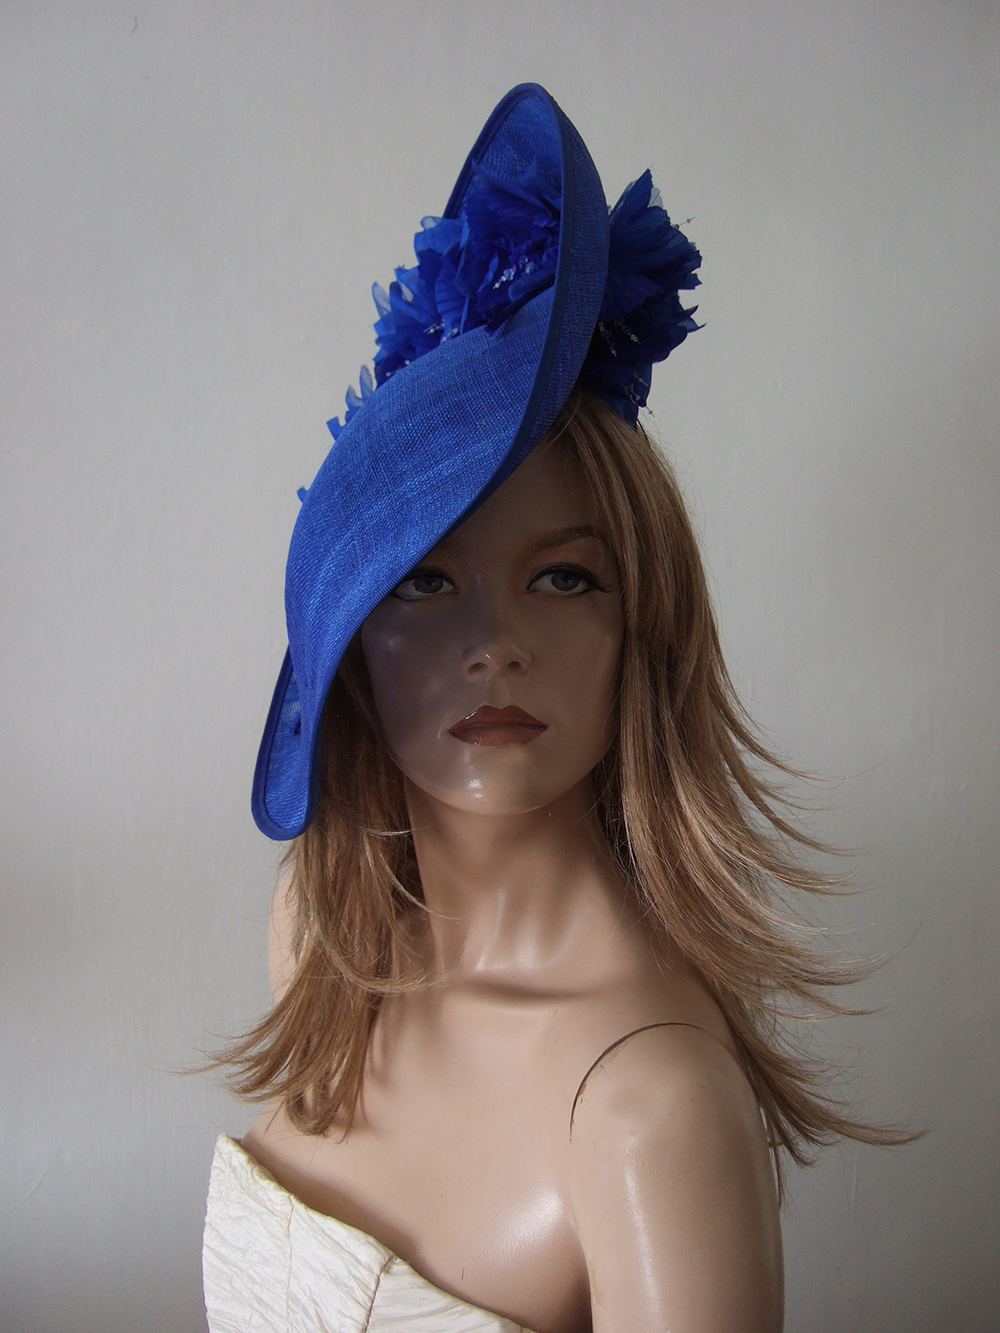 Blue Hats for Royal Ascot 2021. Royal Ascot Hat Rental 2021. Hat Hire Berkshire. Best Royal Ascot Hats 2021. Ladies Wedding Hats for Hire 2020. Blue Mother of the Bride Hats 2020. Rent a Hat for Royal Ascot 2020. Formal Wedding Hats for Hire UK 2020. Hats for the Races 2021.